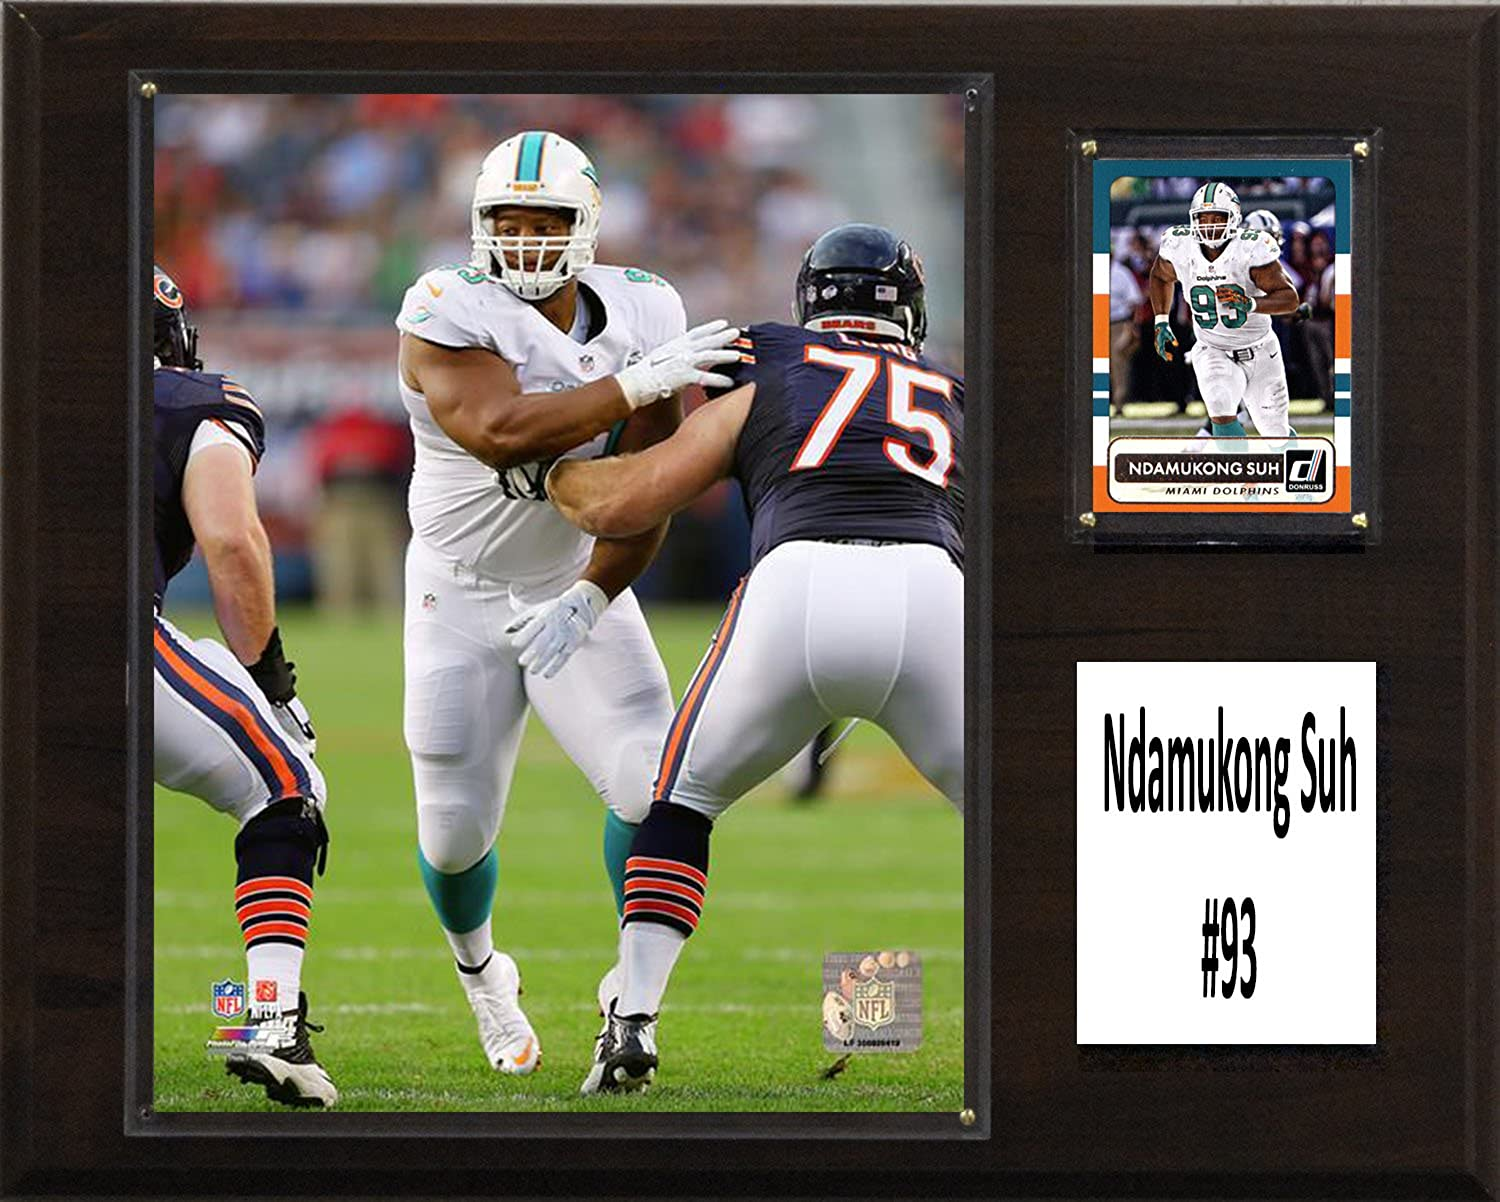 NFL Miami Dolphins Ndamukong Suh Player Plaque, Brown, 12  x 15